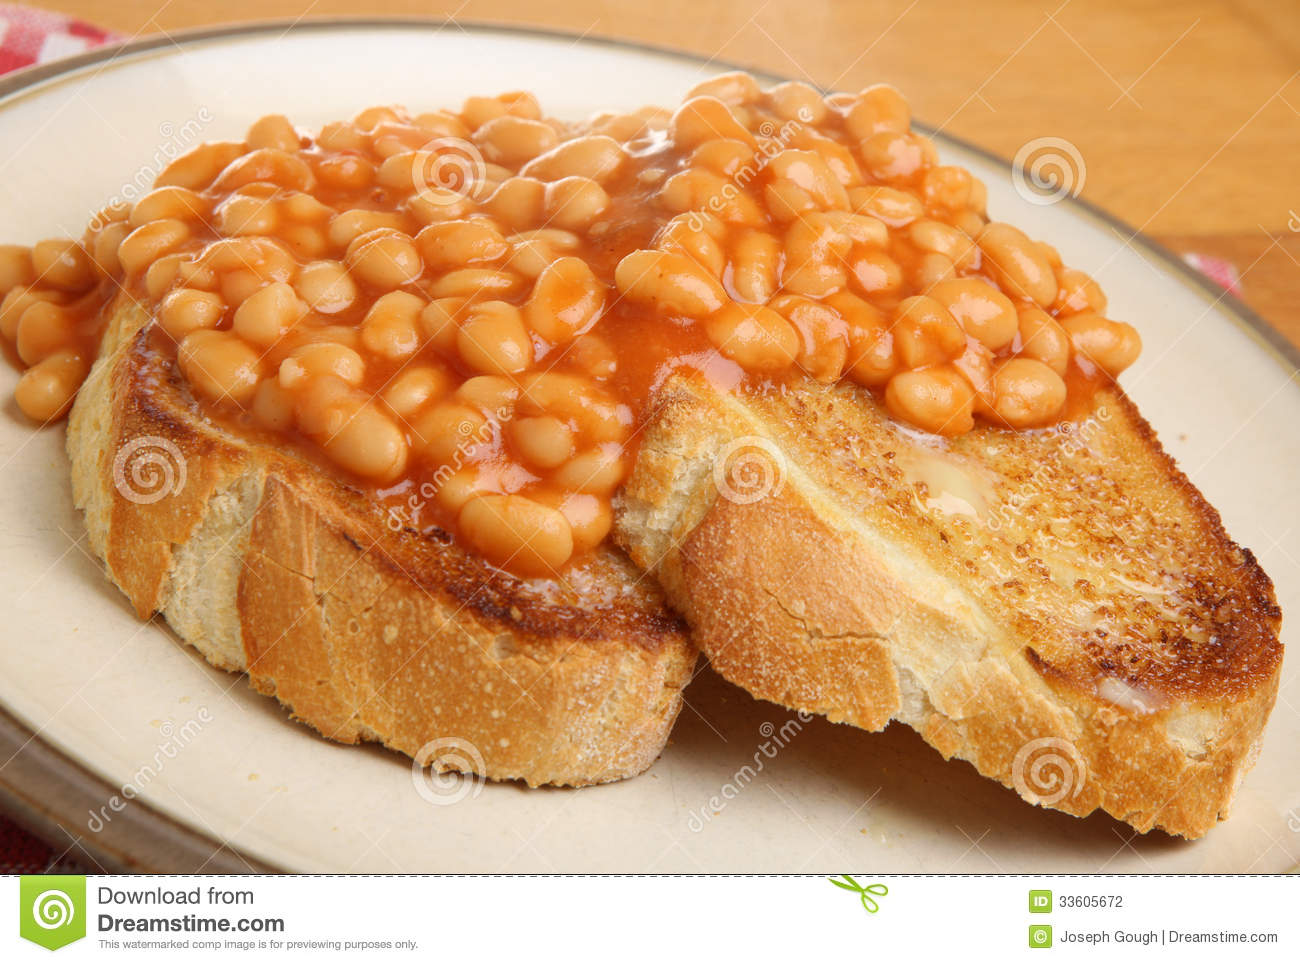 Beans+On+Toast Baked Beans On Toast Stock Photography - Image ...